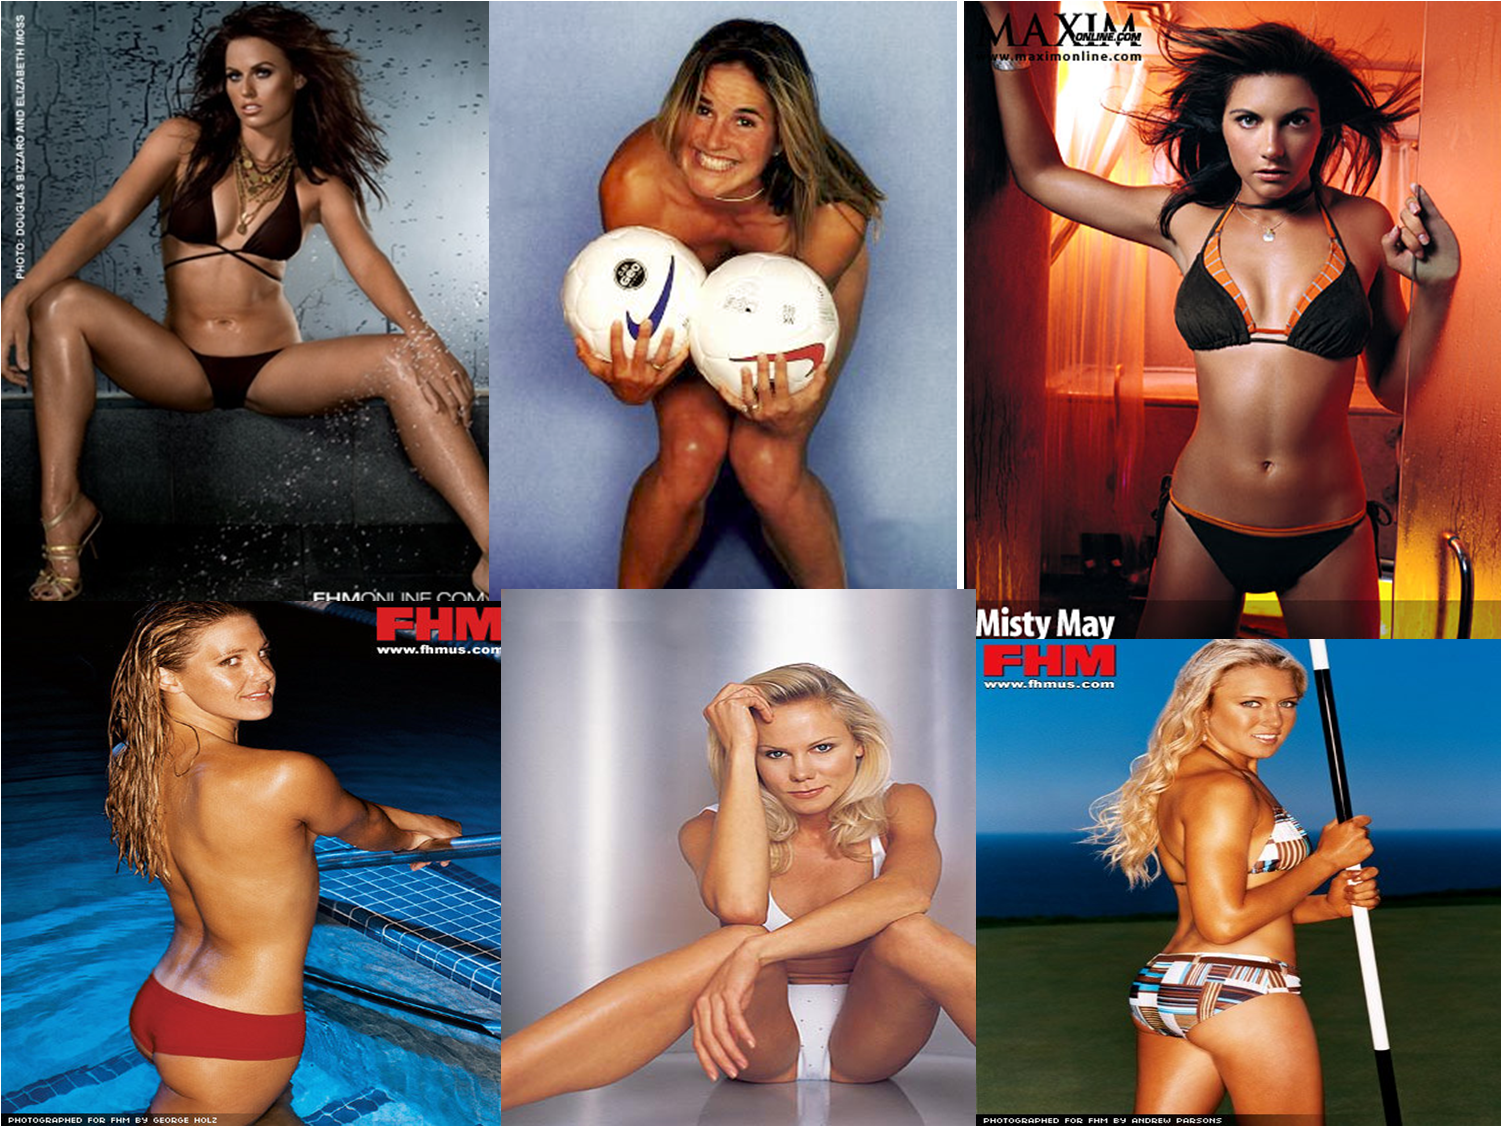 Sexualisation of women in the media